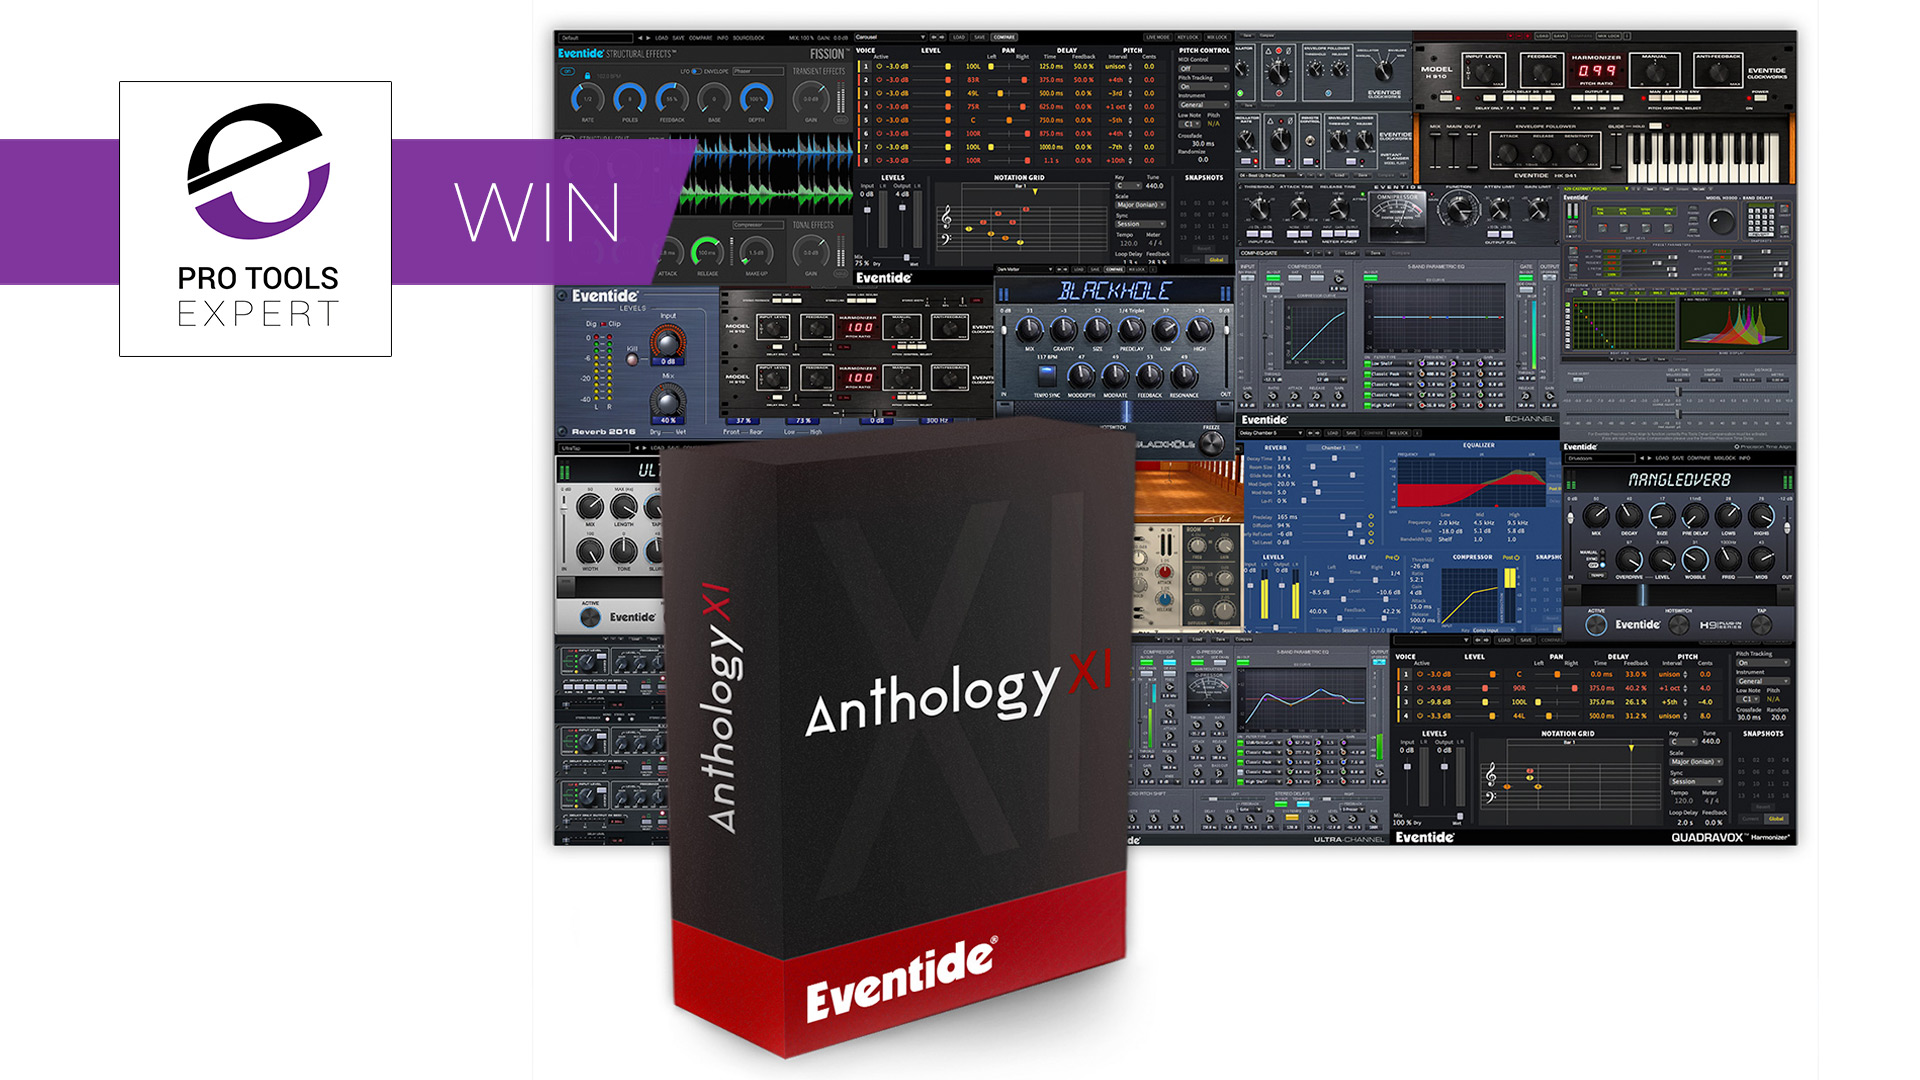 win-anthology-xi-eventide-plug-in-bundle.jpg